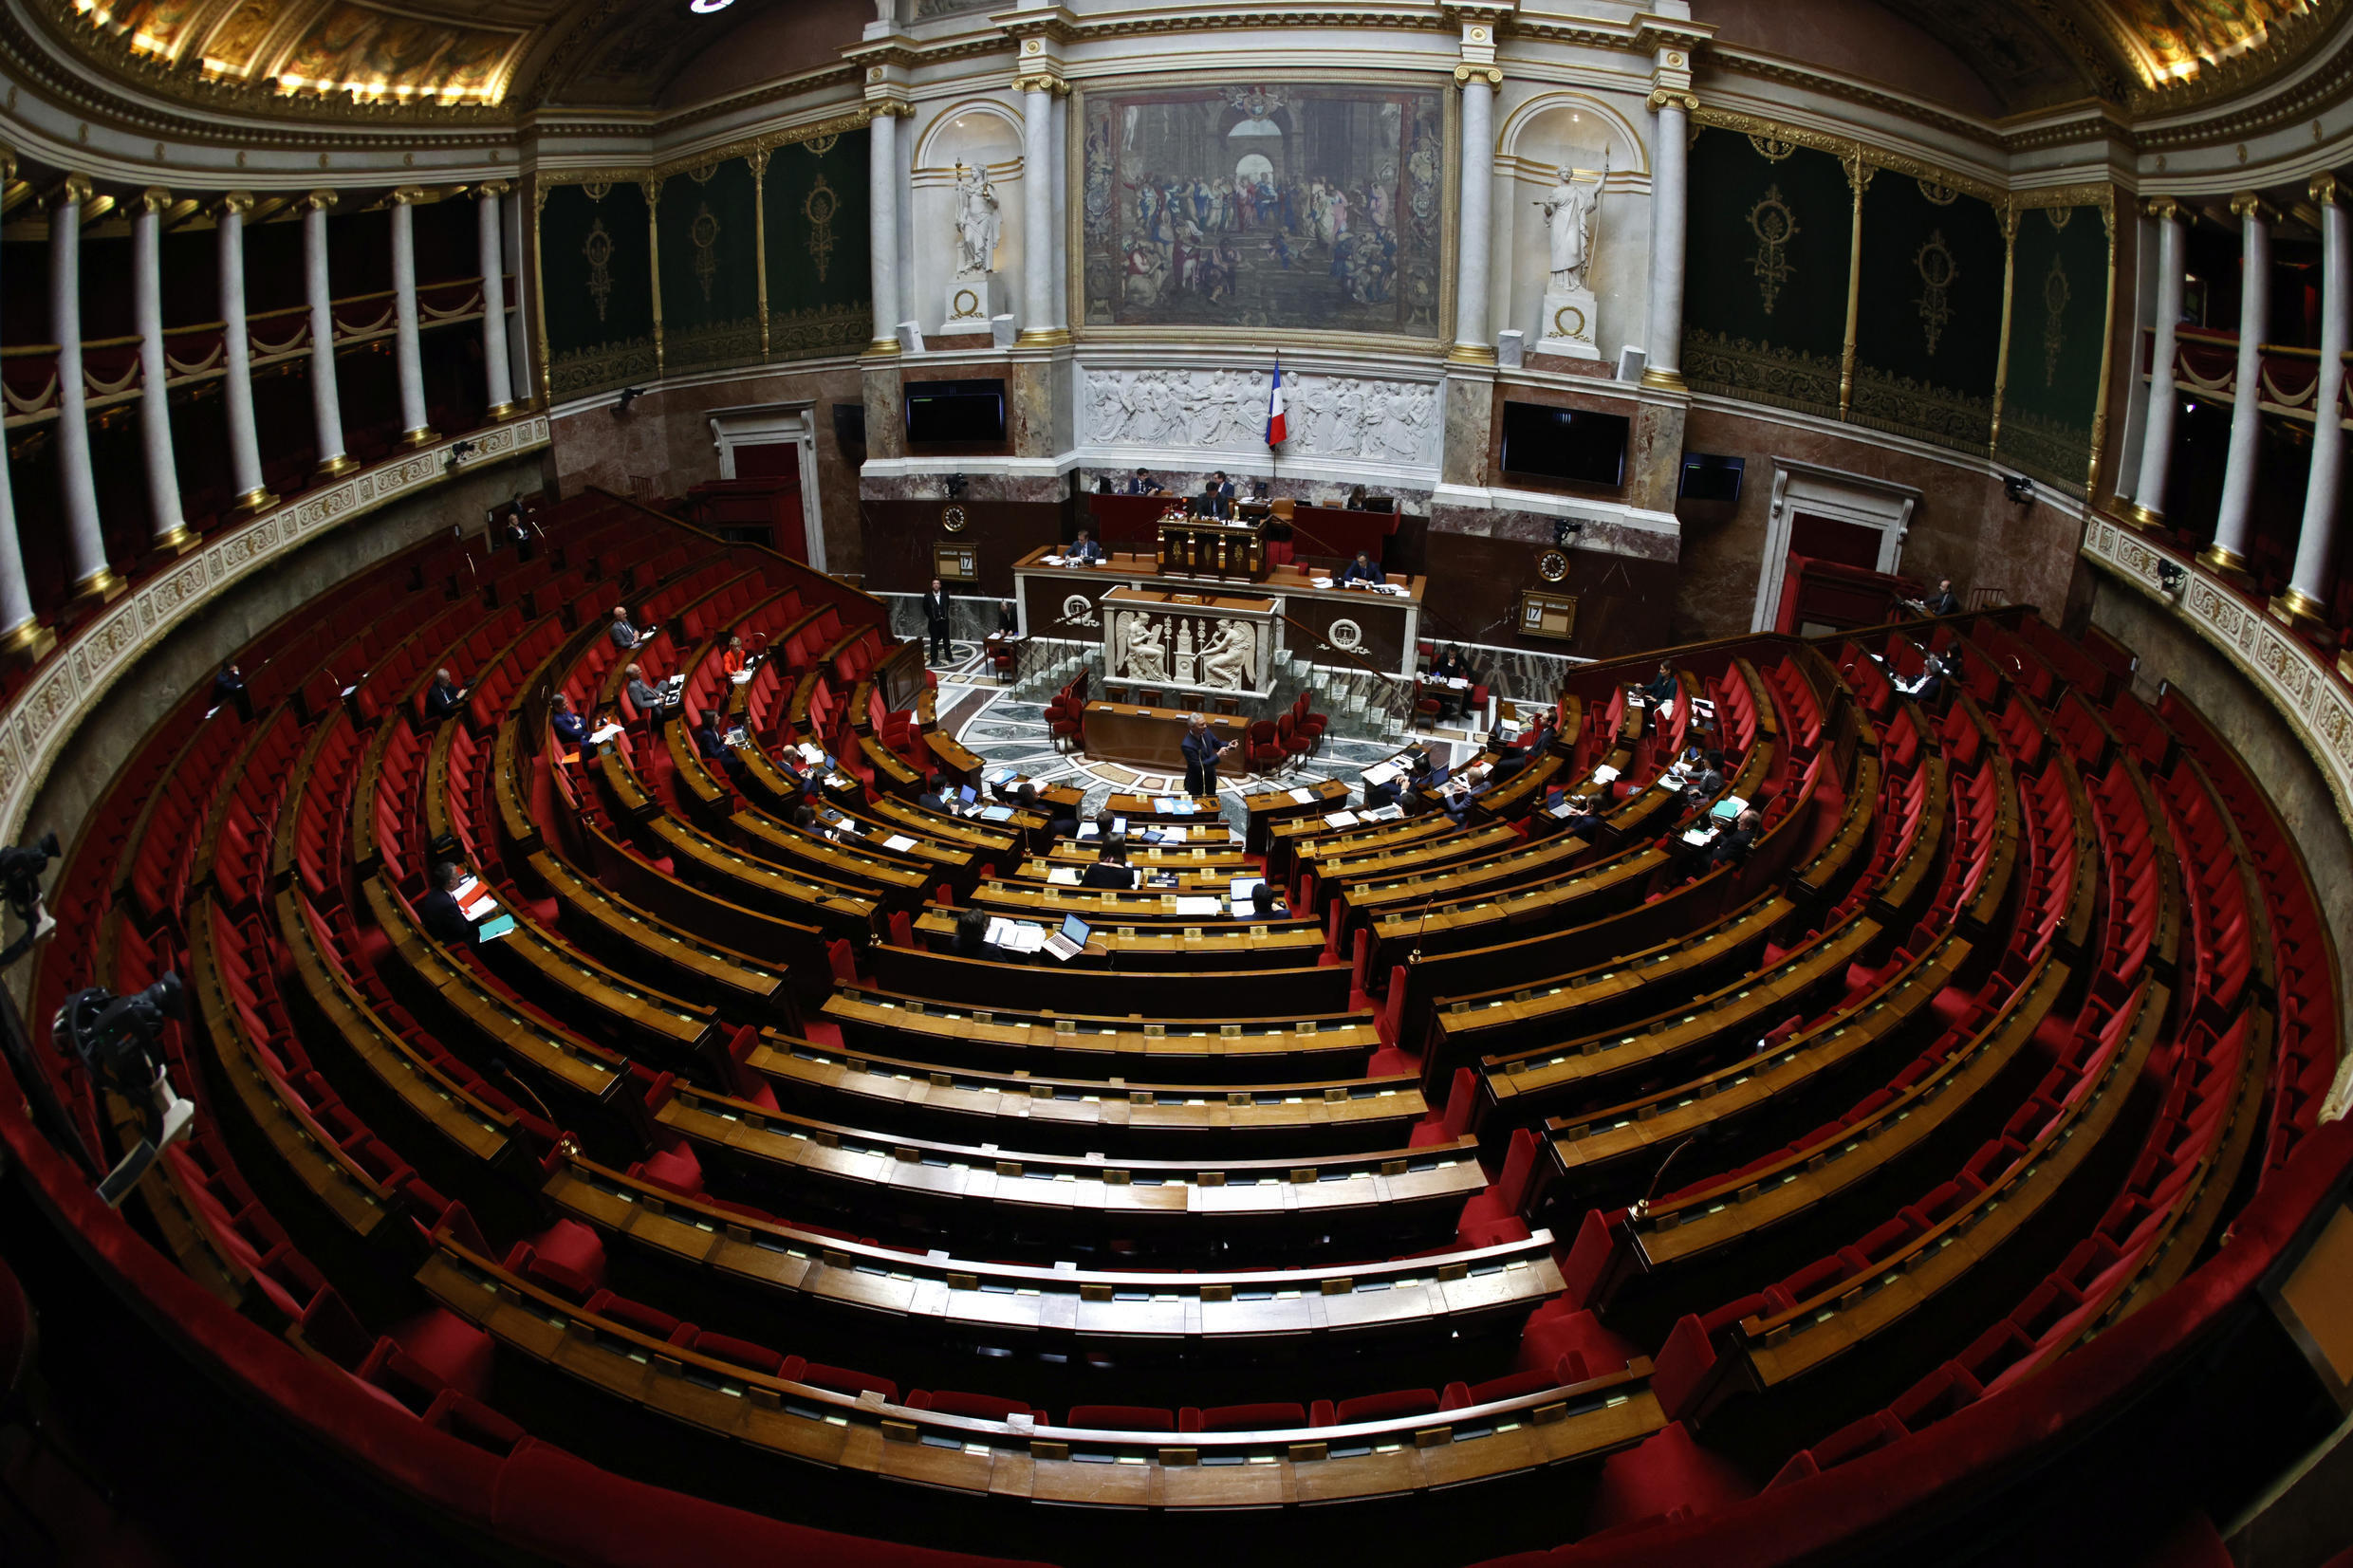 The French National Assembly on April 18, 2020 approved an emergency budget to help tackle the coronavirus crisis.